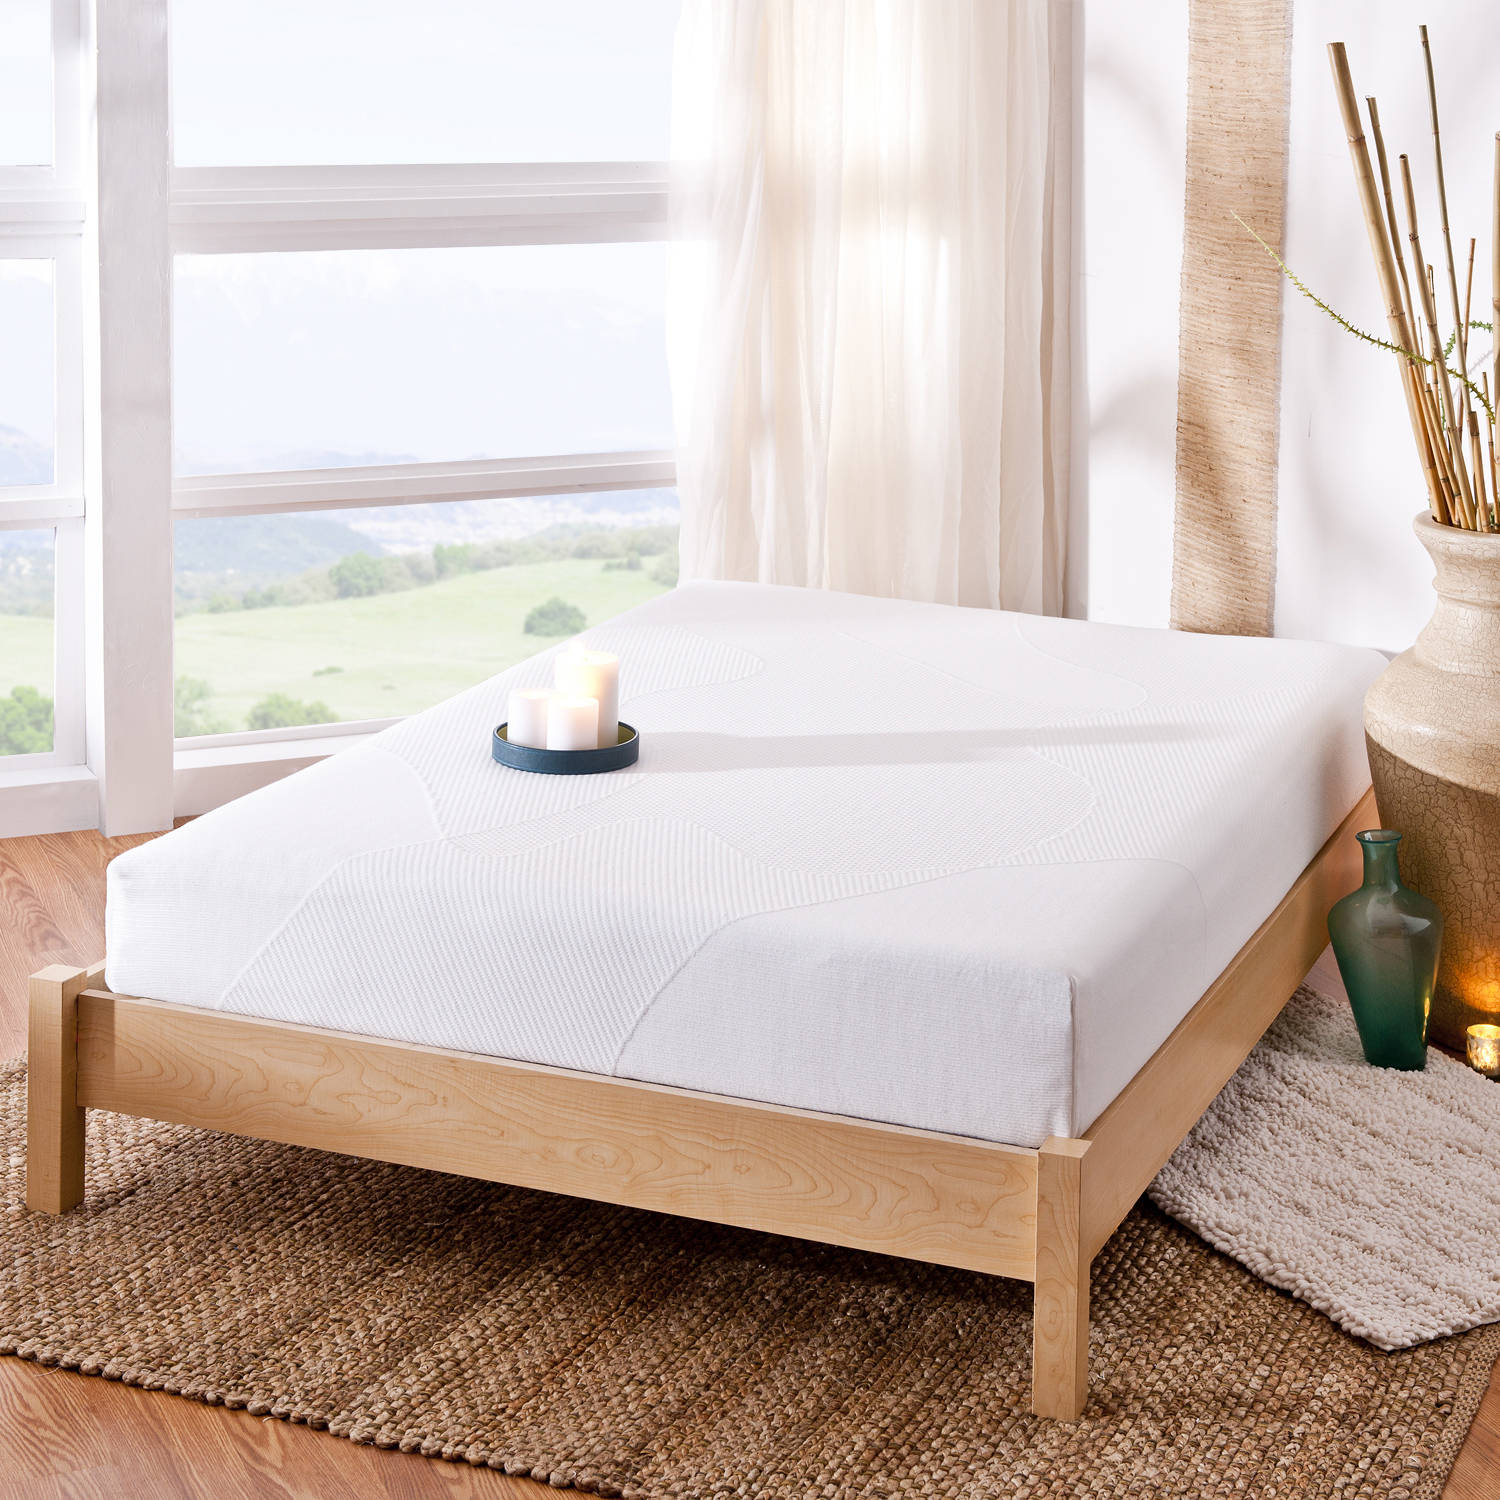 "Spa Sensations 8"" Memory Foam Mattress, Multiple Sizes"